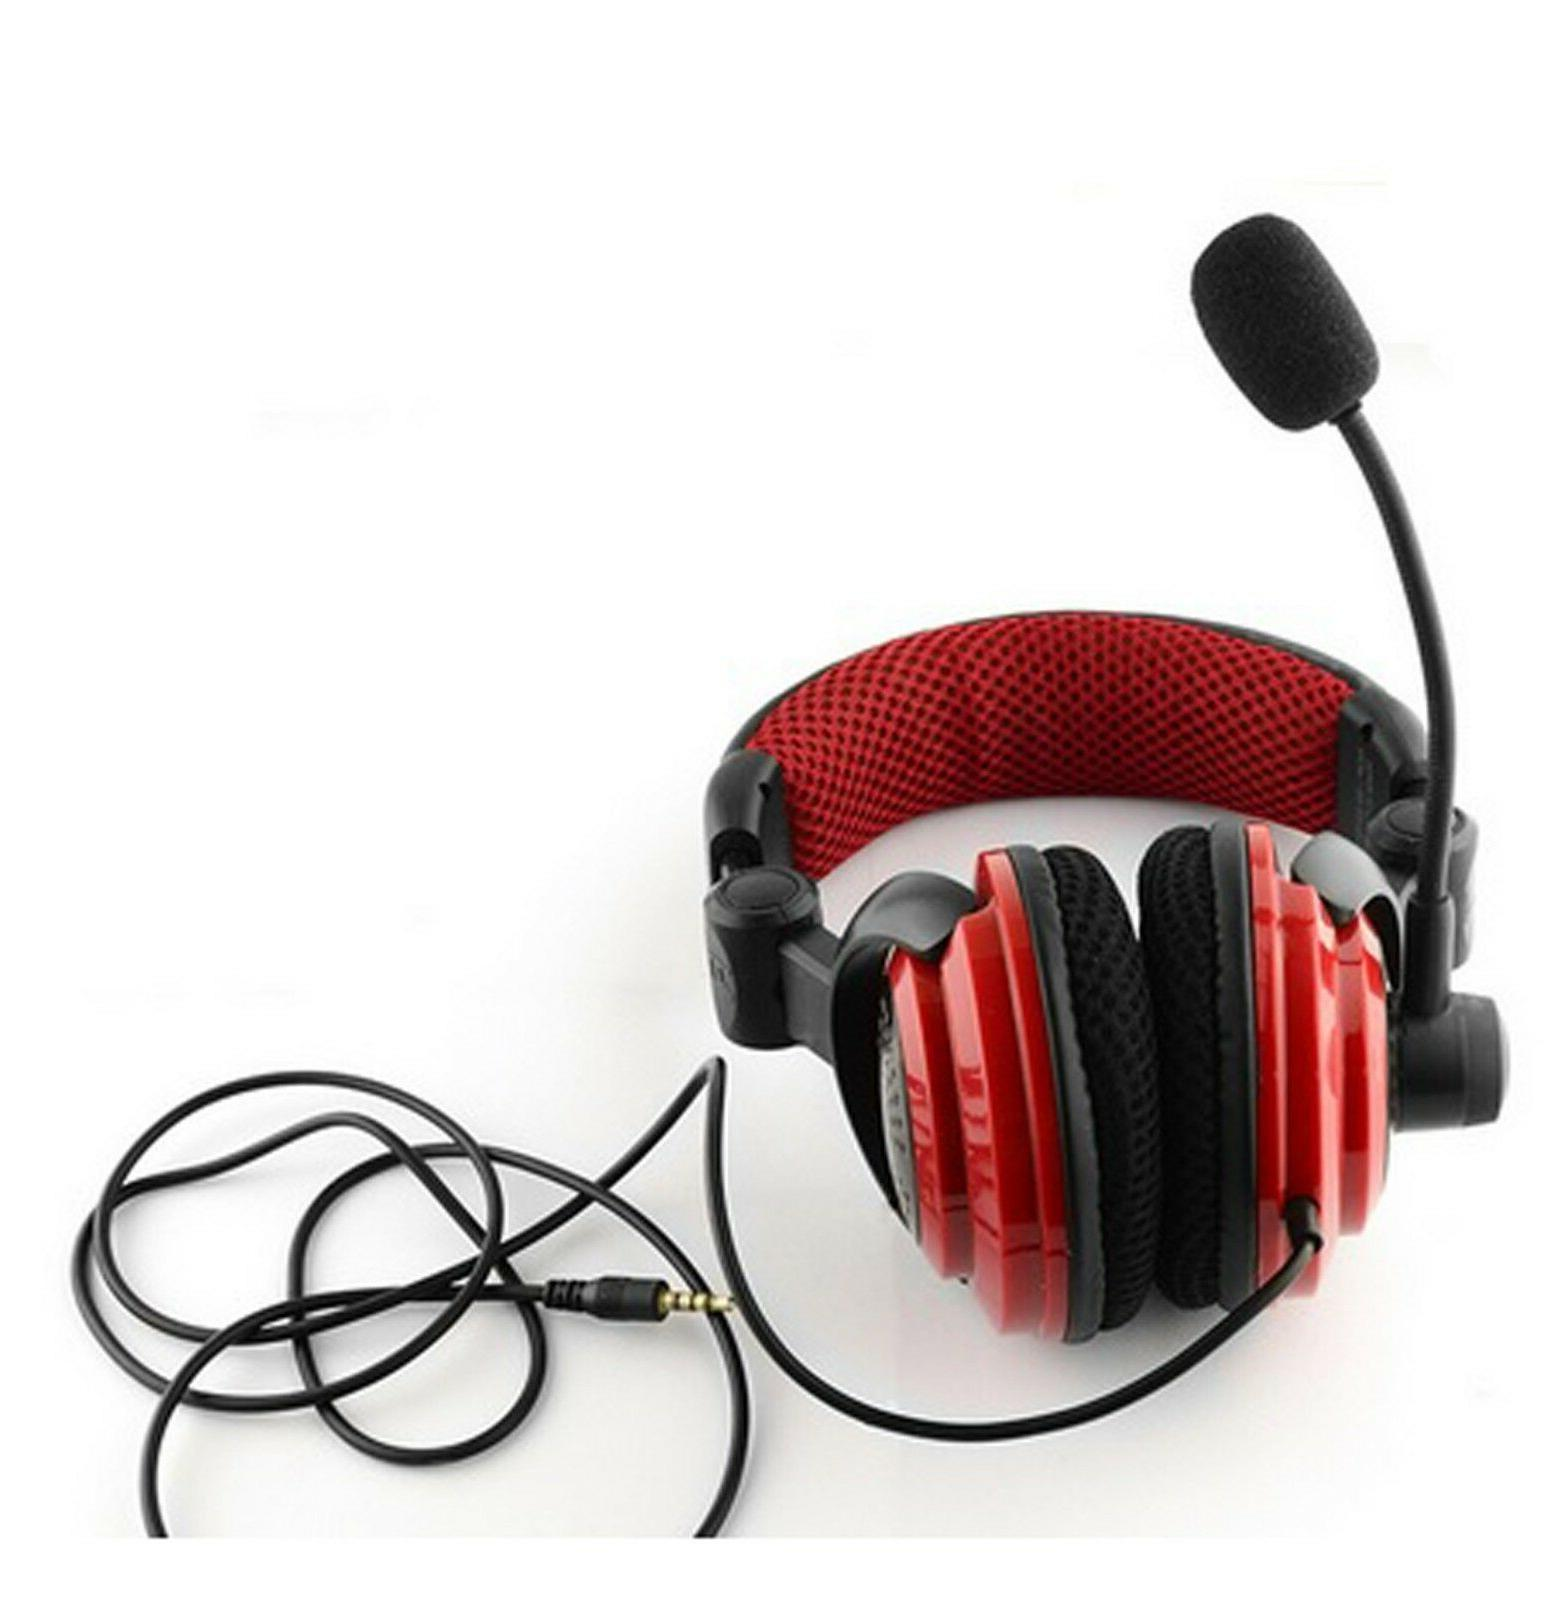 NEW HEADSET WITH MICROPHONE FOR XBOX ONE & S PC